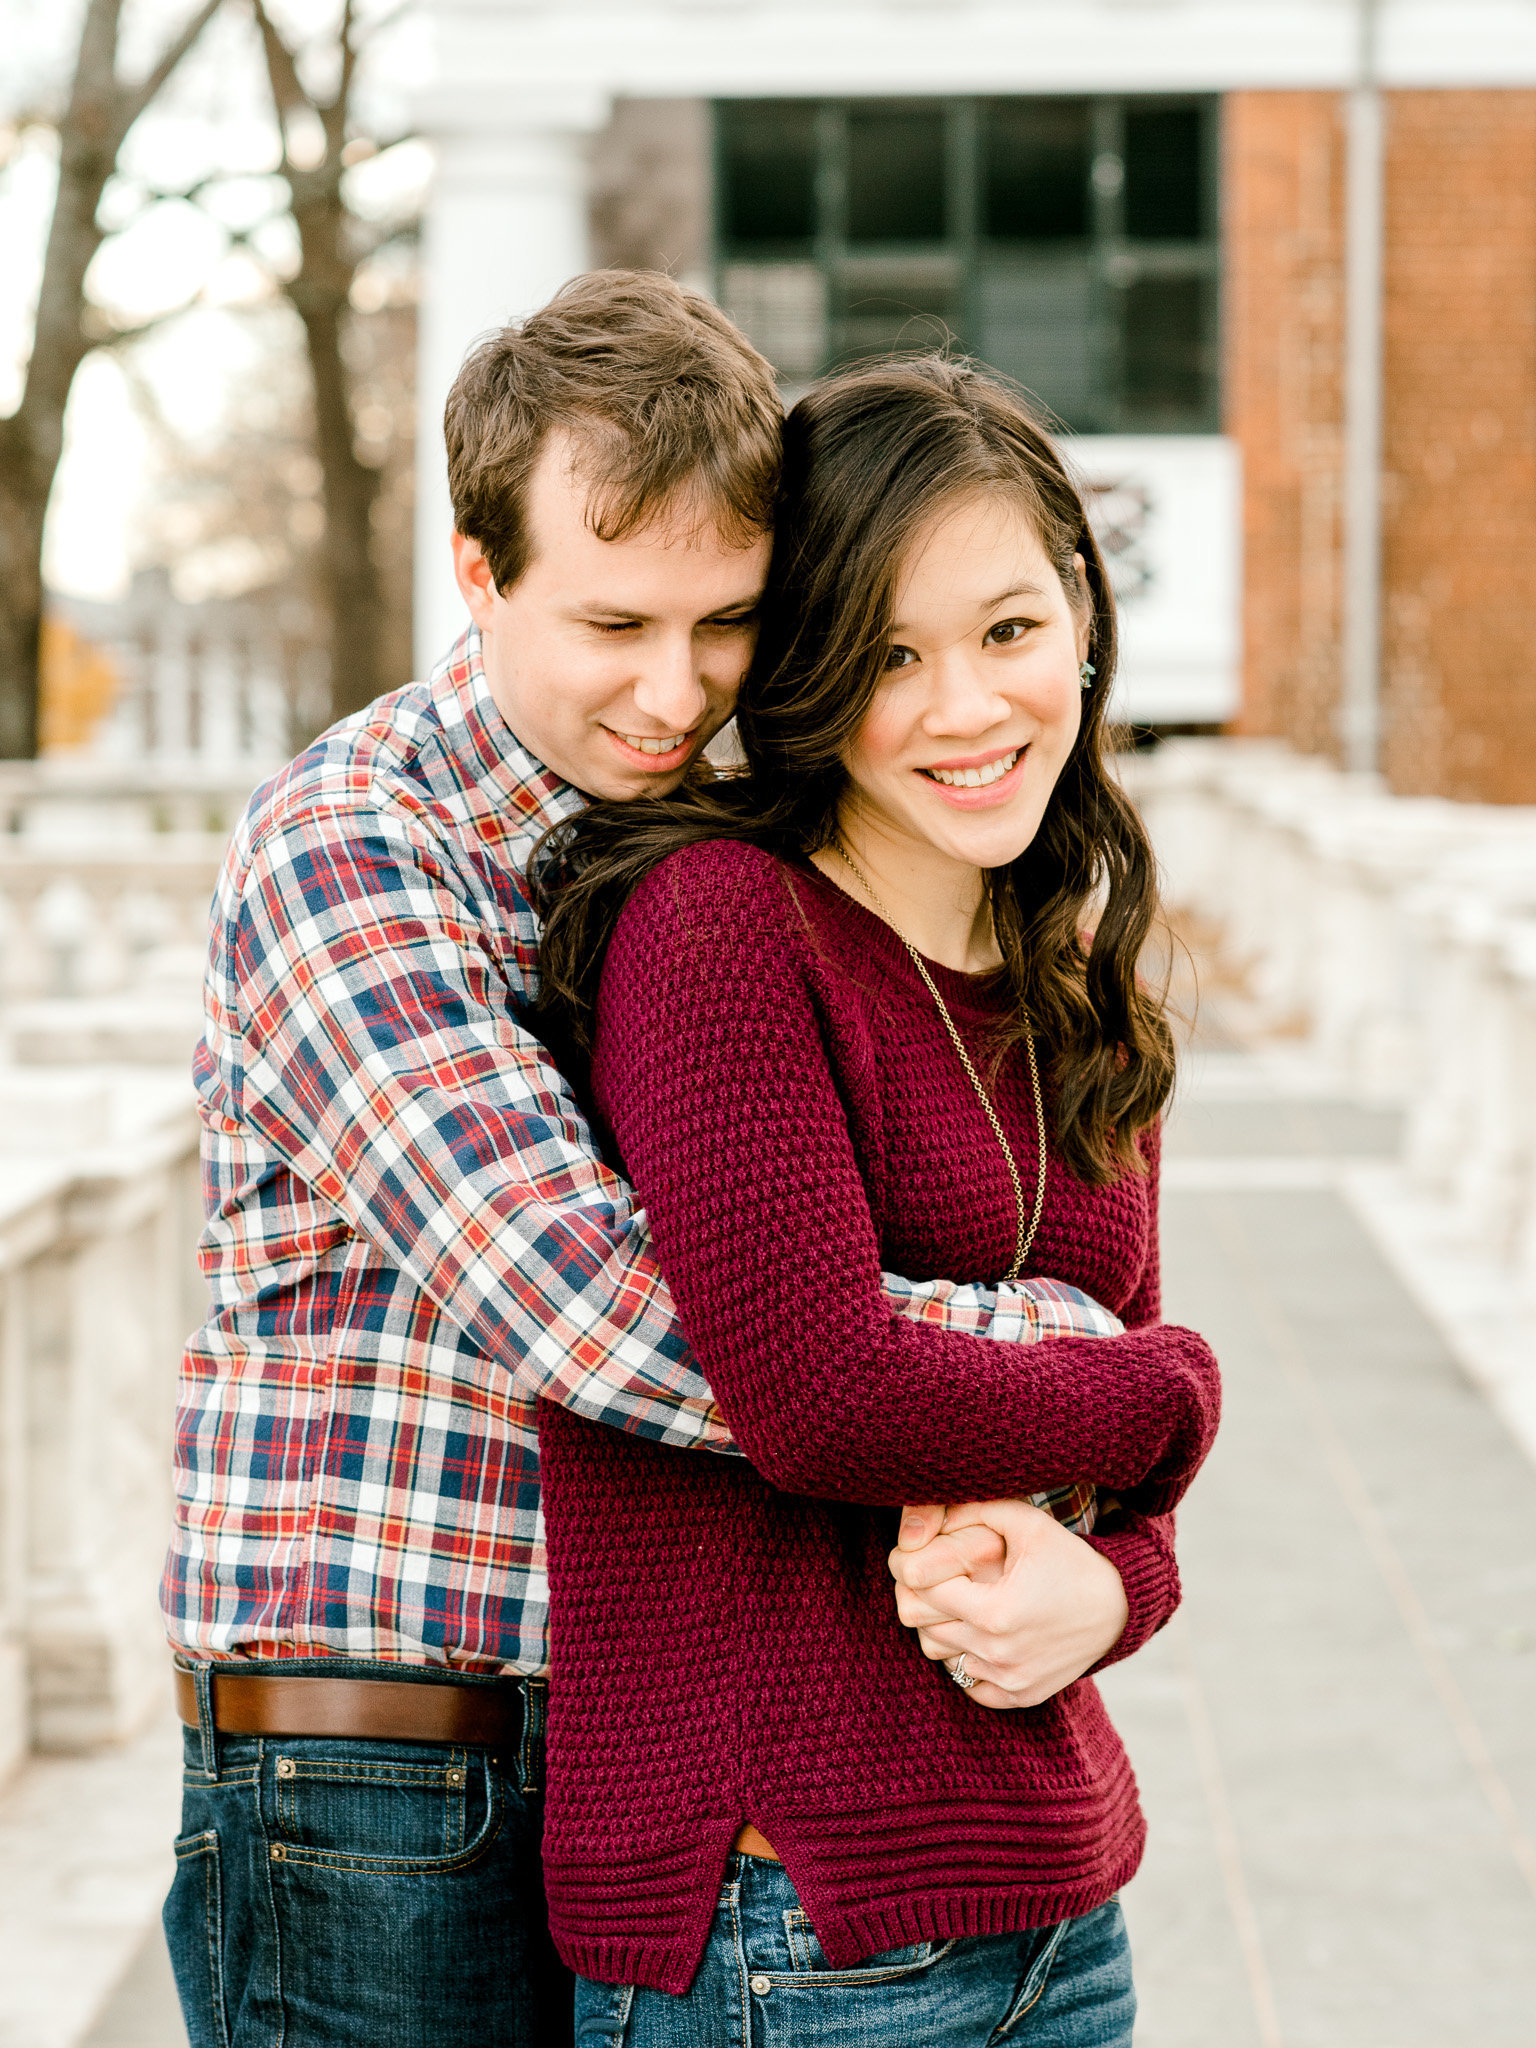 FACEBOOK-Monica and Justin Engagement Session-4